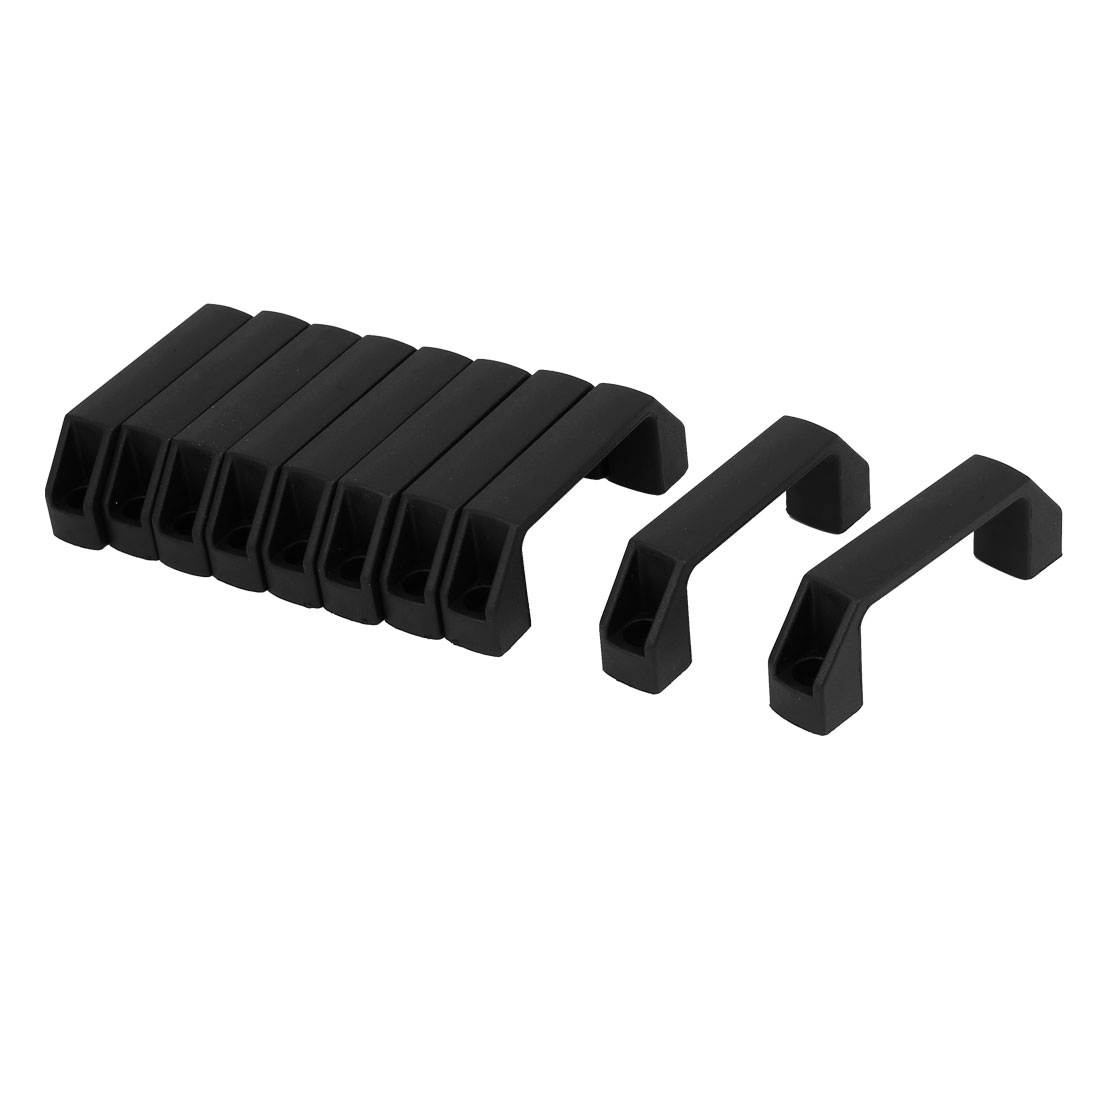 Cabinet Gate Door Plastic Pull Handles Black 90mm Hole Spacing 10pcs